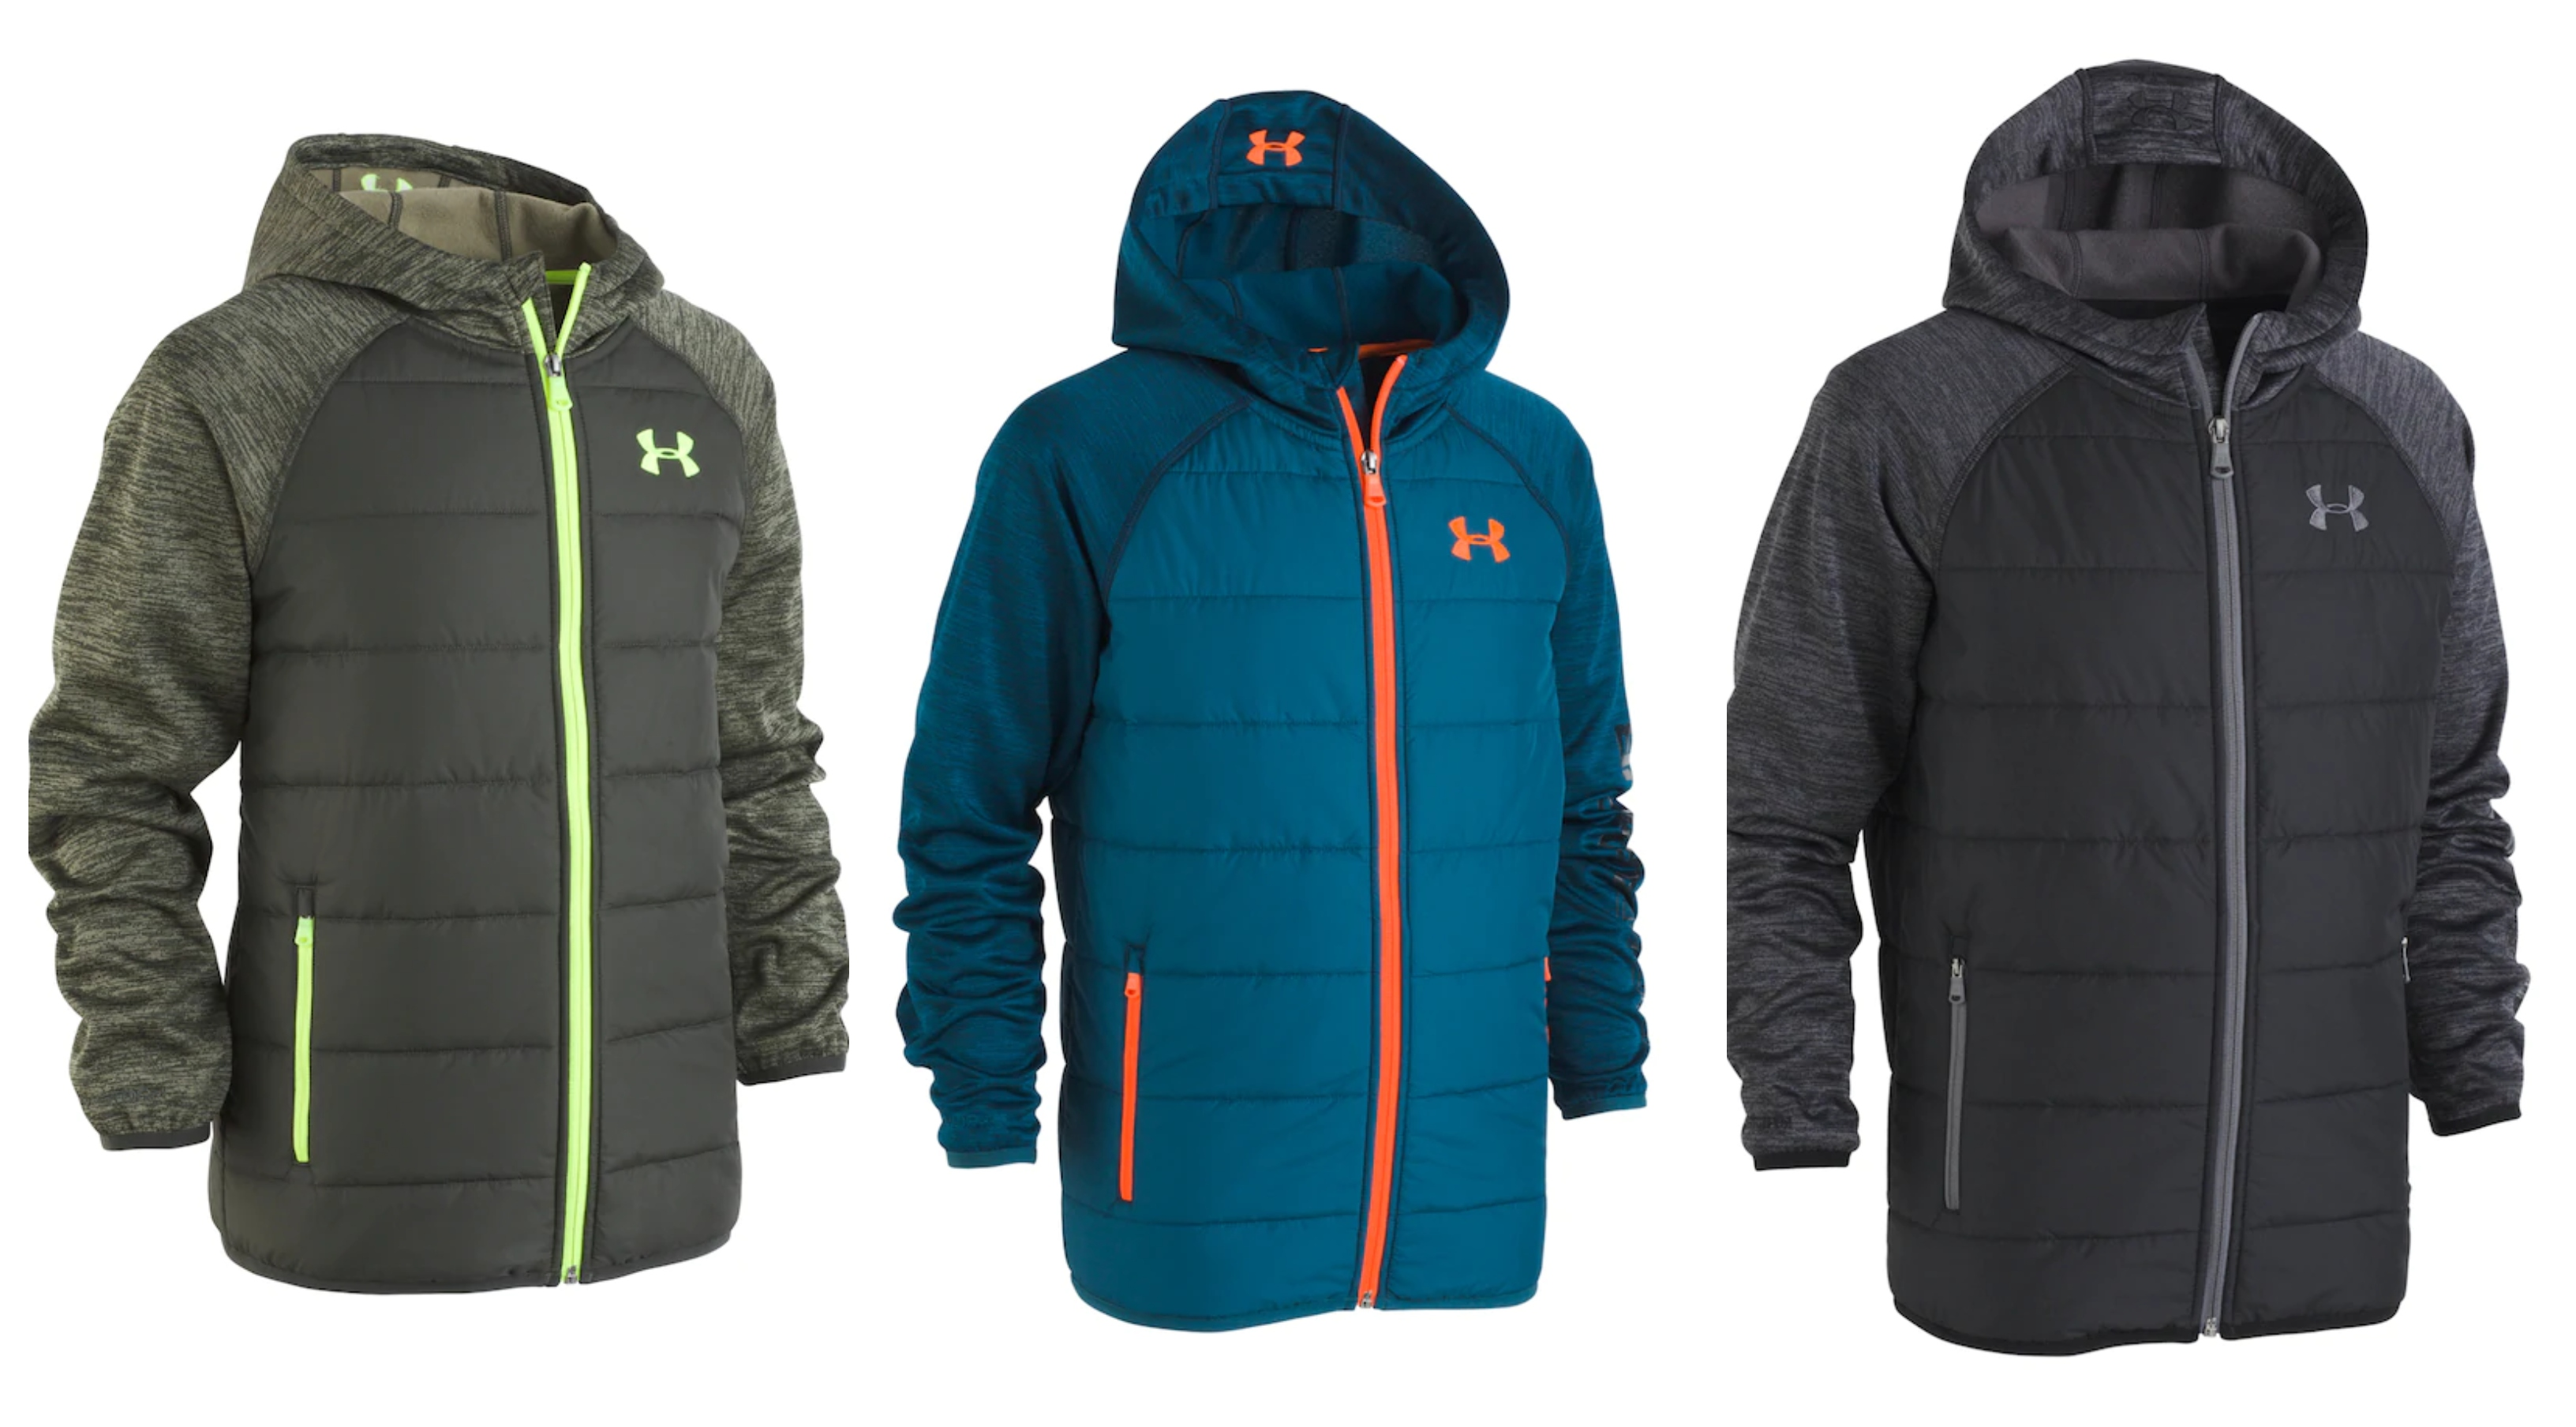 dd669cfd6a5 Kohl s  Boys  Under Armour Jackets – only  26 (reg  85) + 25% Off More  Under Armour!